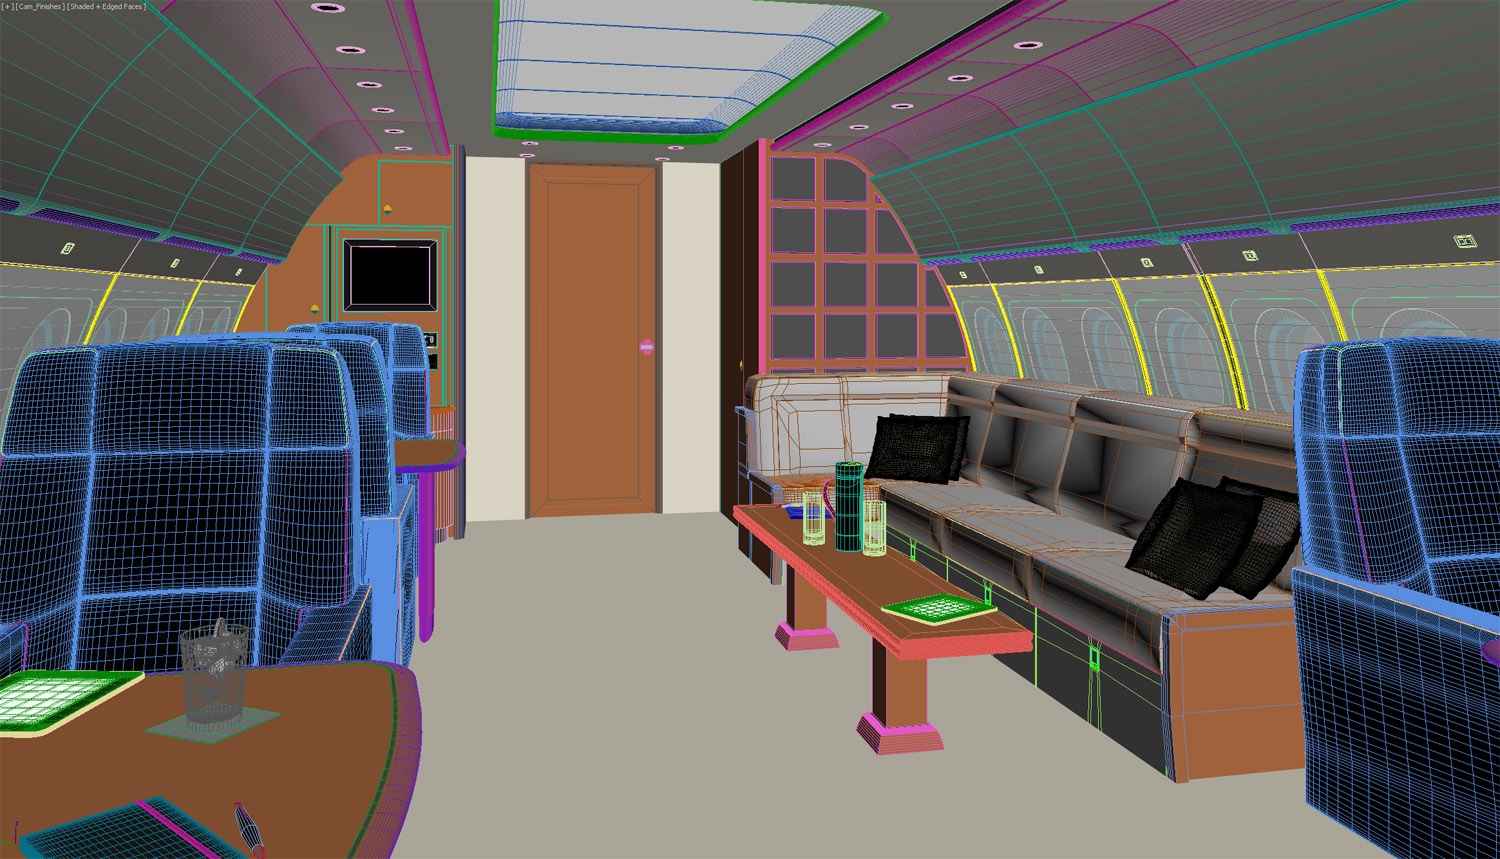 Wireframe view of lounge area.